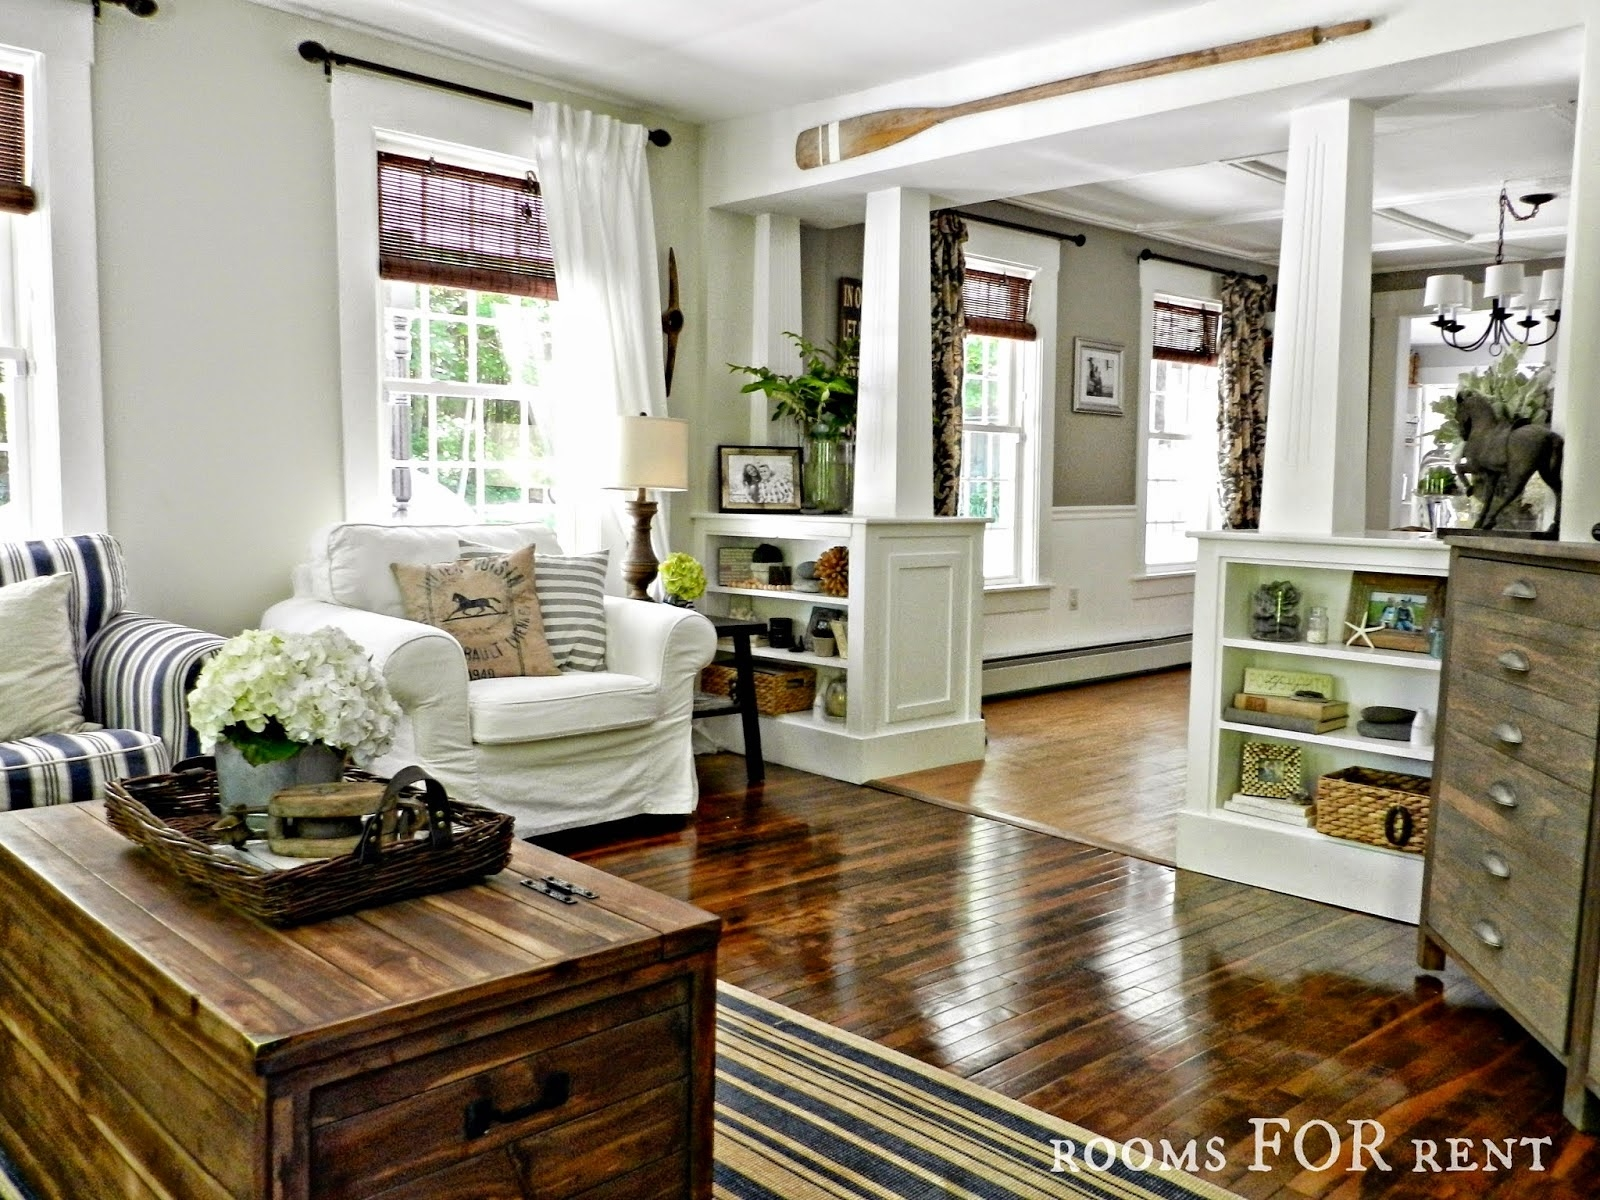 Style House Rooms For Rent City Farmhouse Love The Bookcases Intended For Family Room Bookcases (#12 of 15)